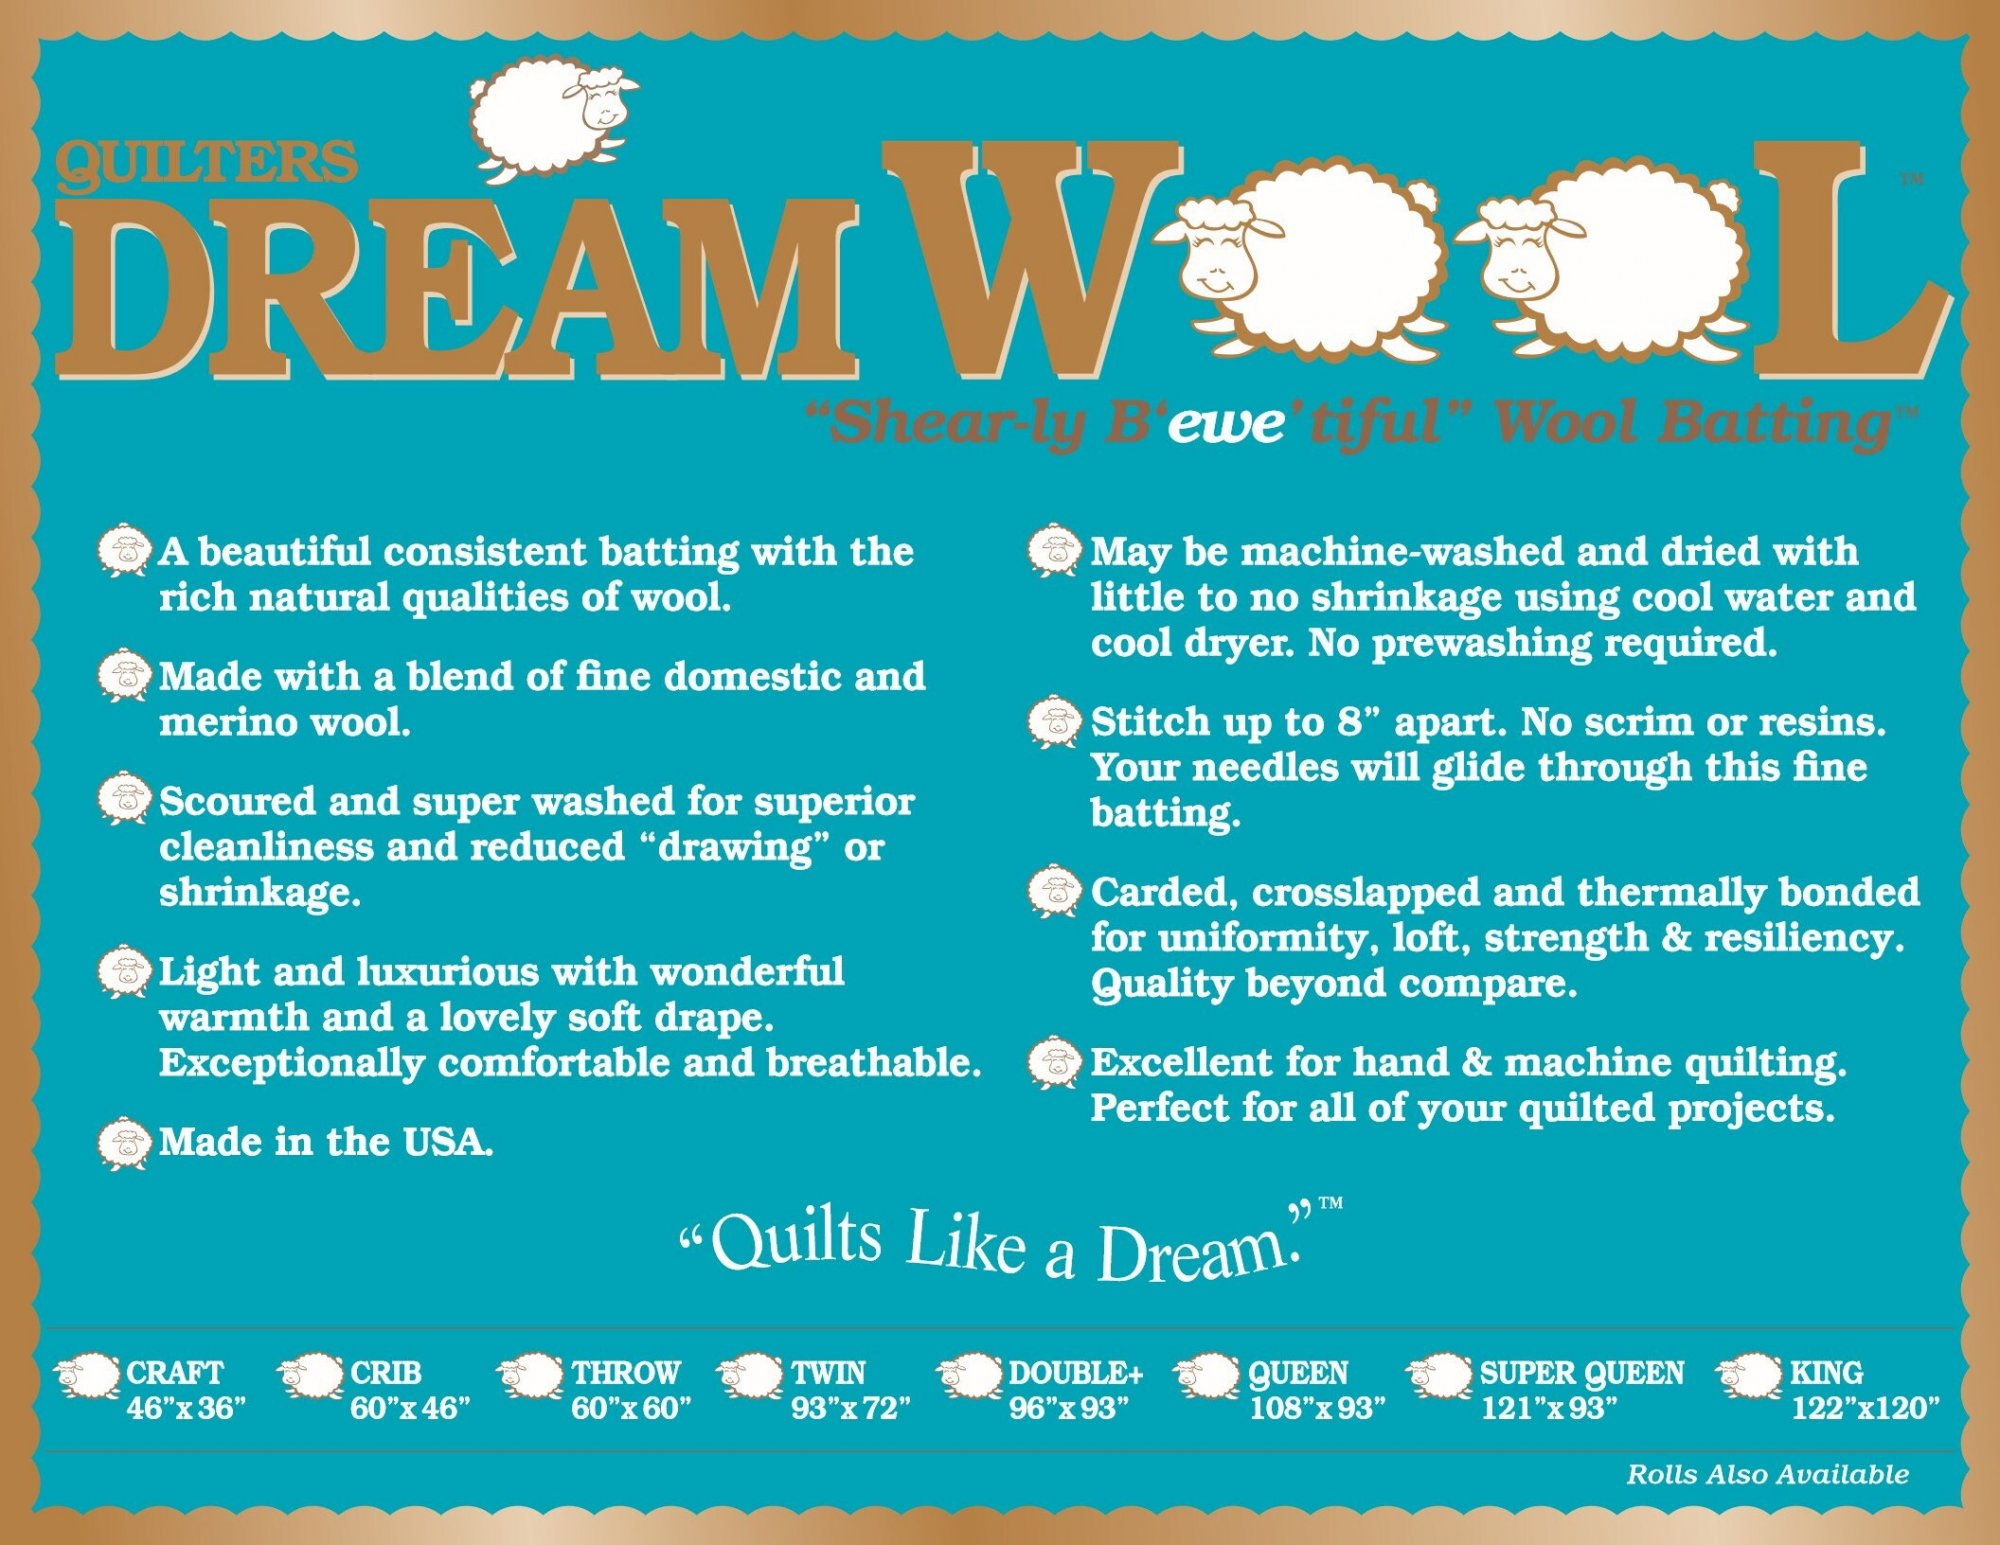 Quilters Dream Wool Batting - Throw